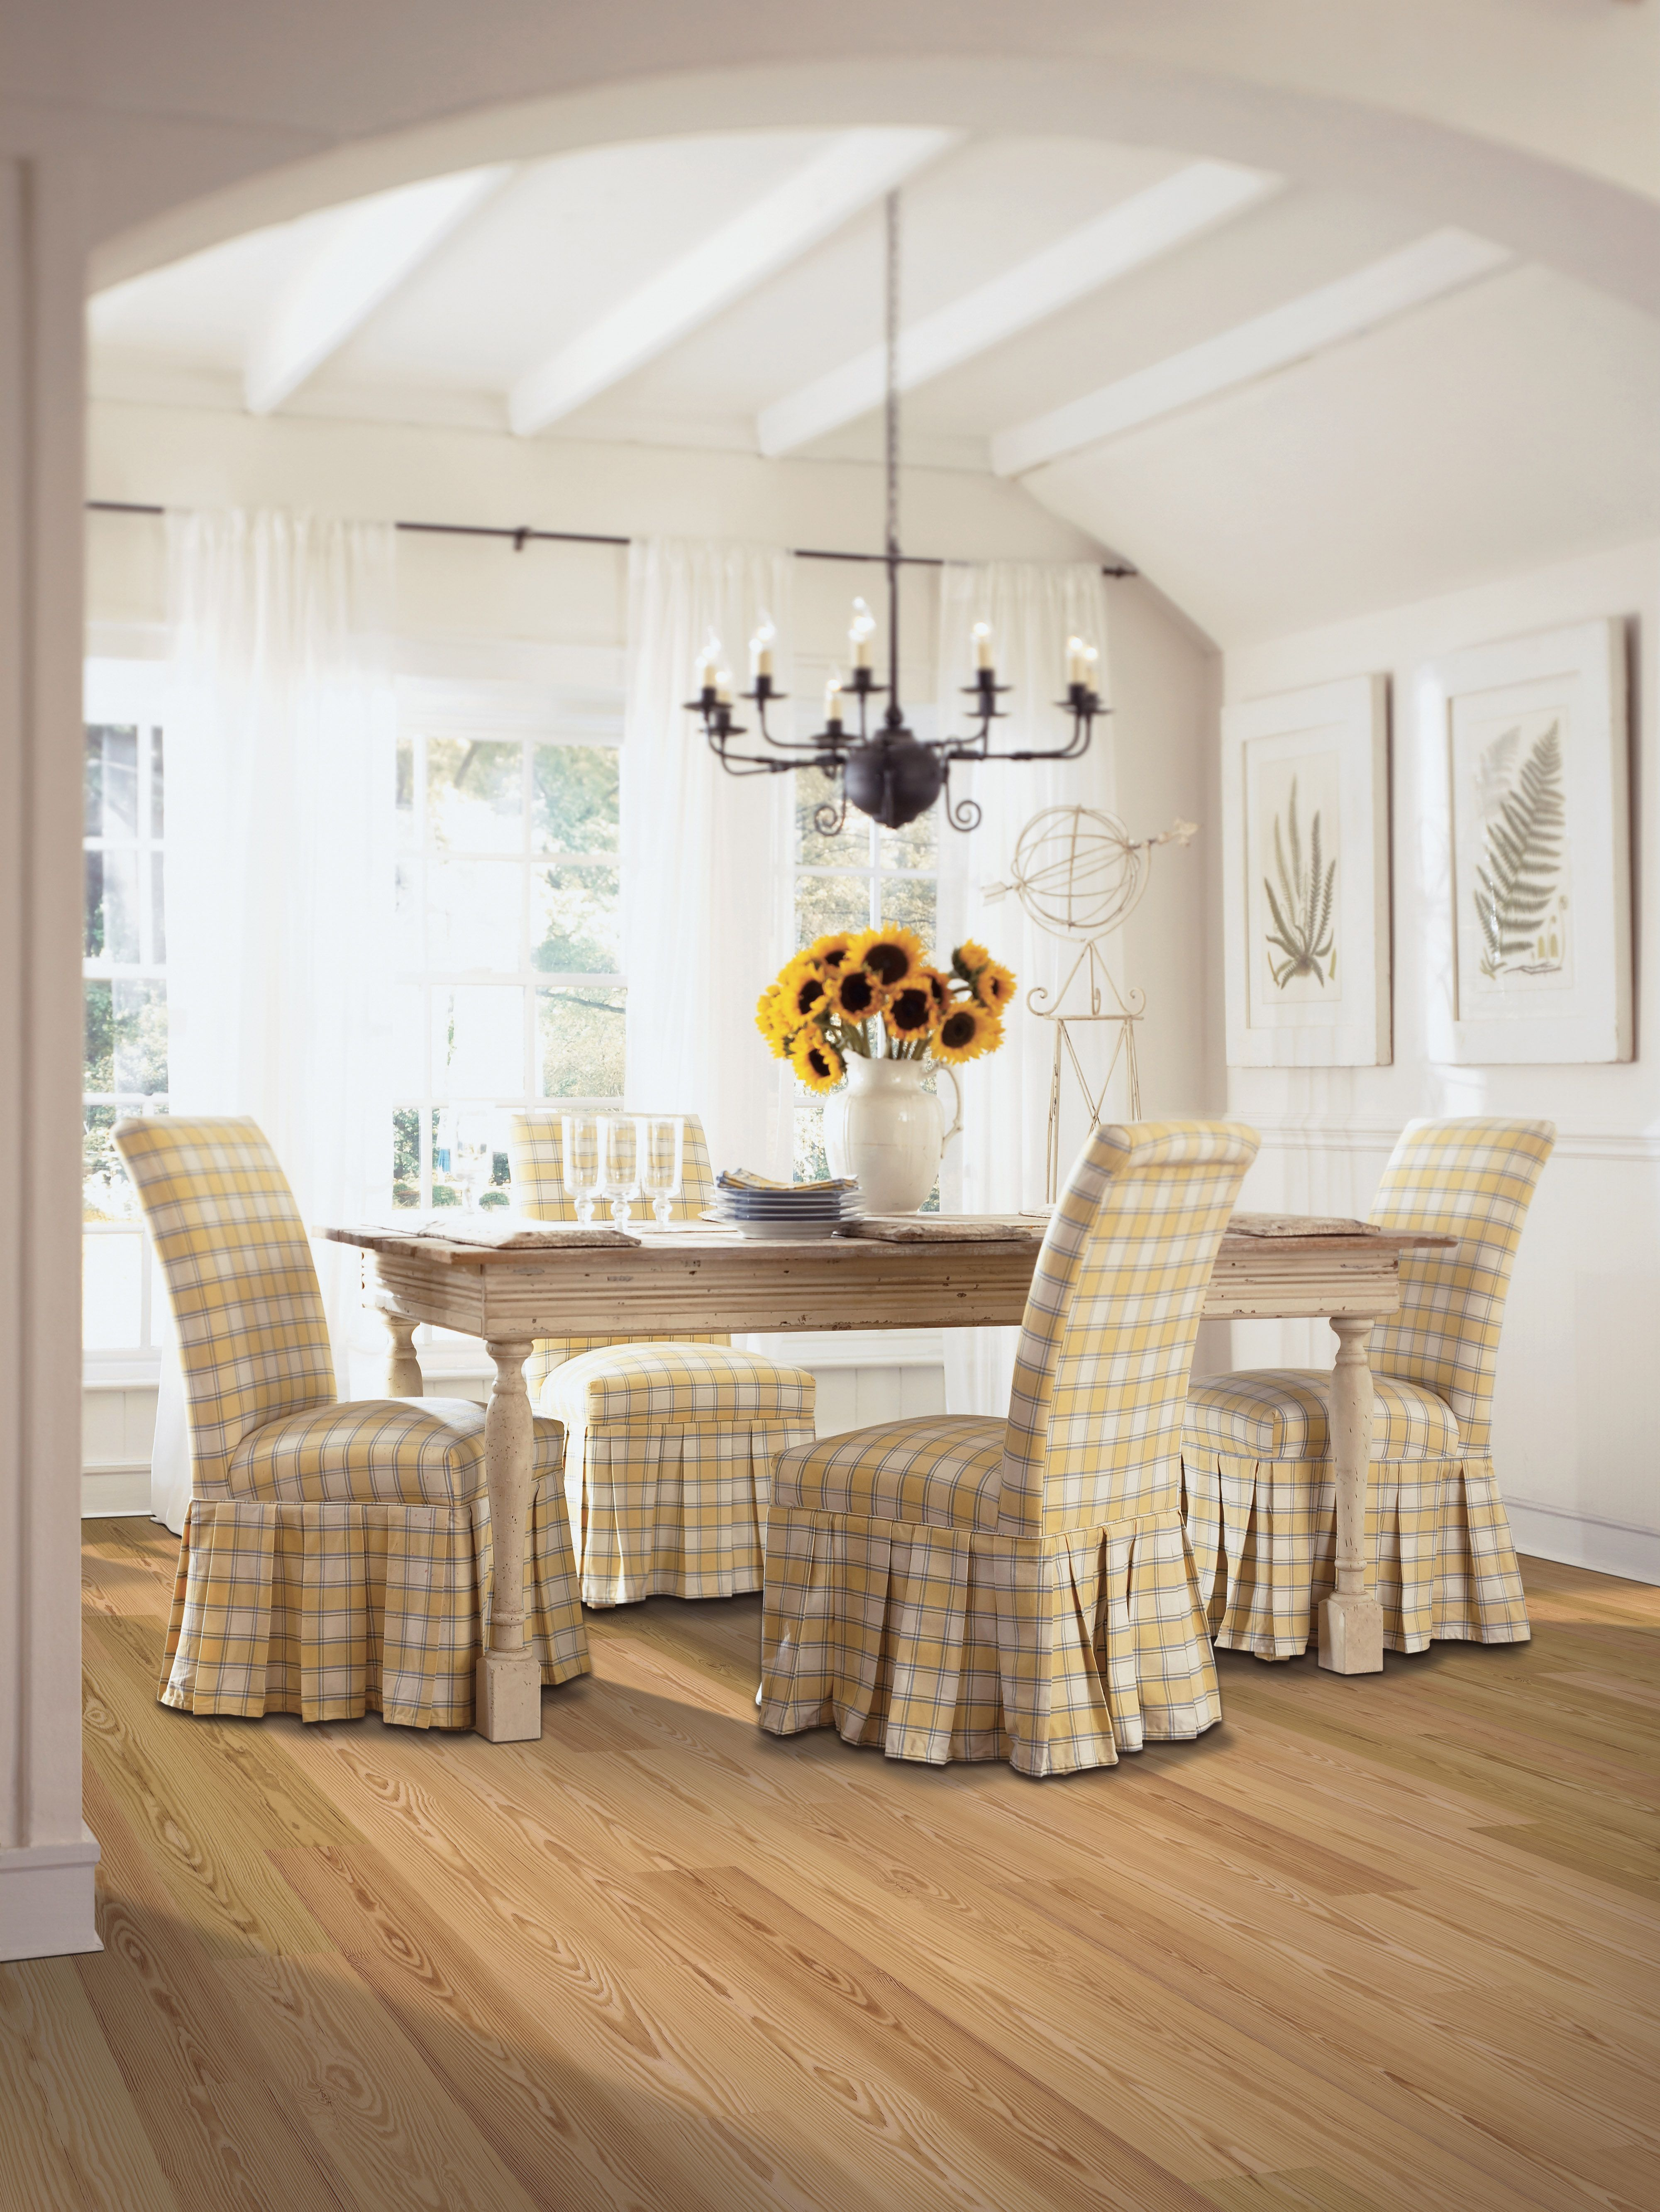 Home Improvement & Flooring solutions from www.AromazHome